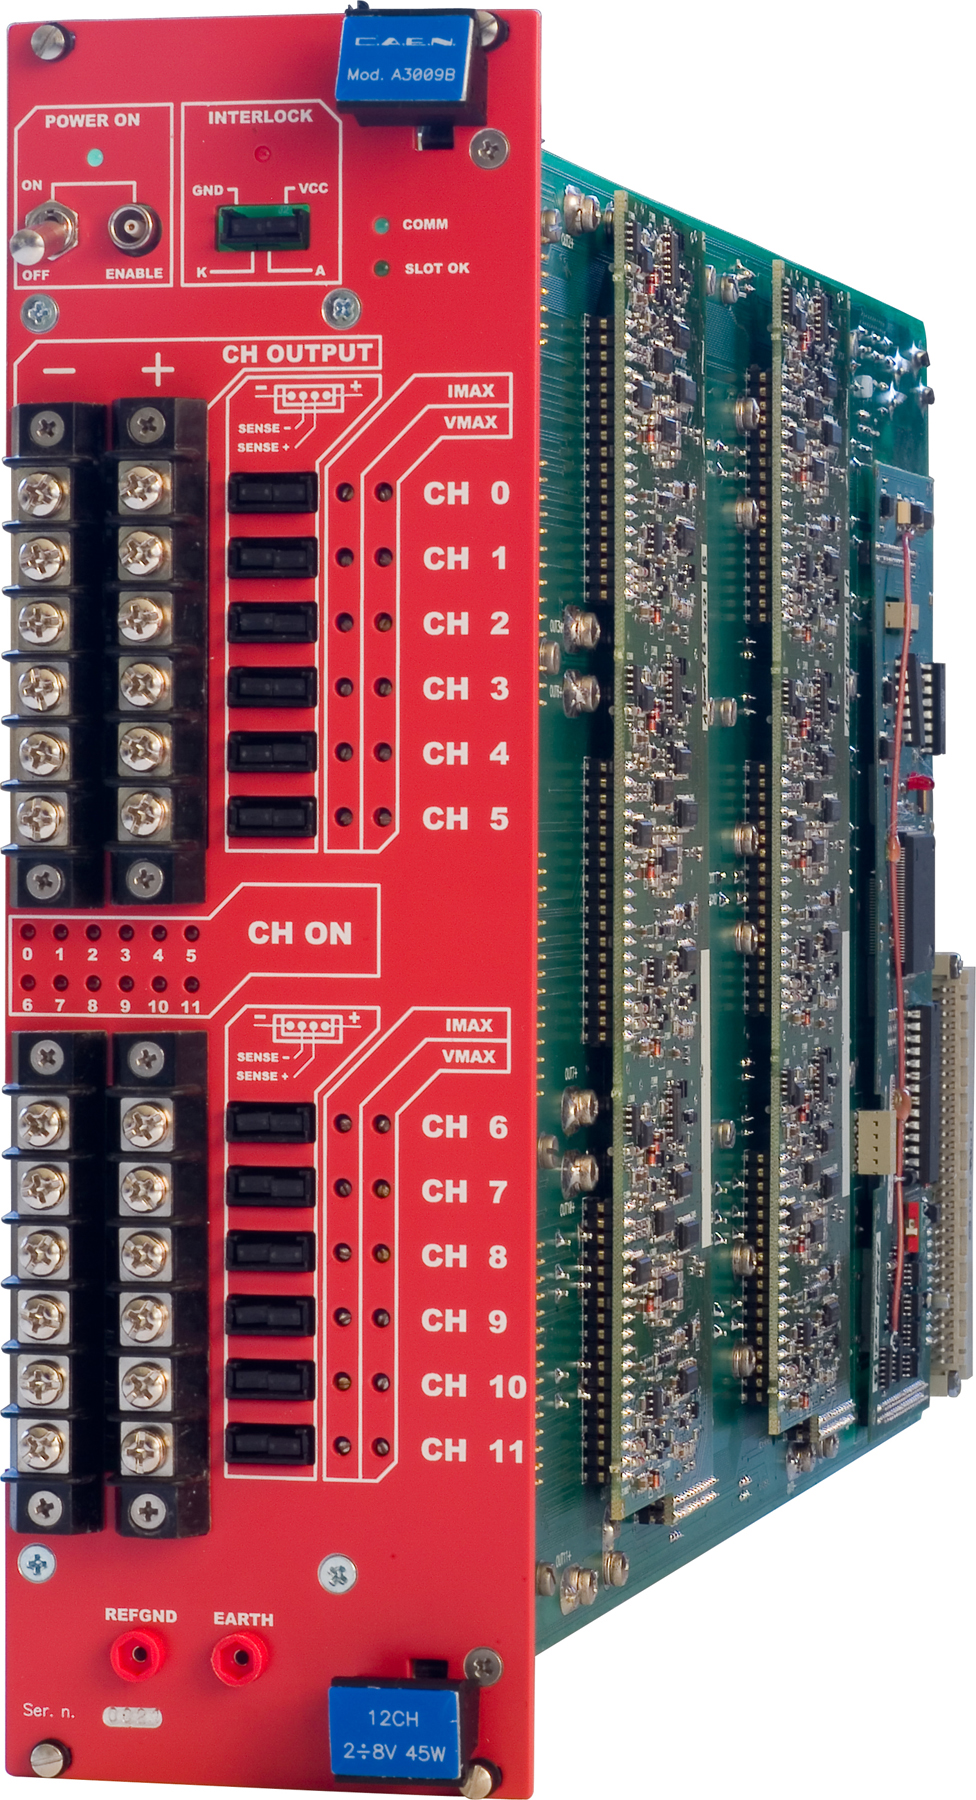 A3009b Easy3000 Lv Floating Power Supply Boards Caen Schematic Furthermore Atx Diagram Easy Subsystem Module